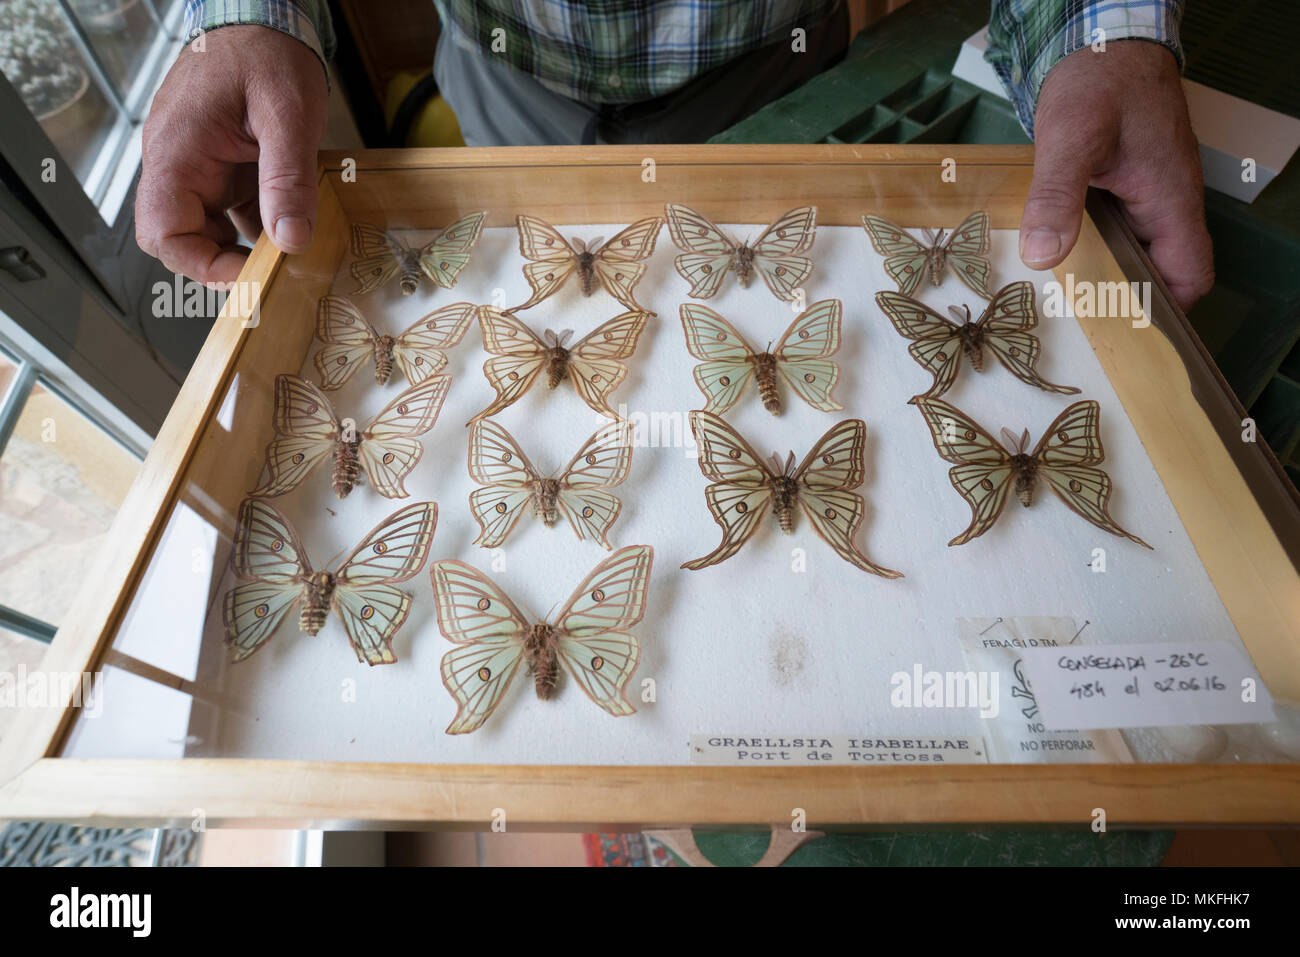 Scientific studies on butterfly Spanish moon moth (Graellsia isabellae), The Ports Natural Park, Terres de L'Ebre, Tarragona, Catalonia, Spain, Europe Stock Photo